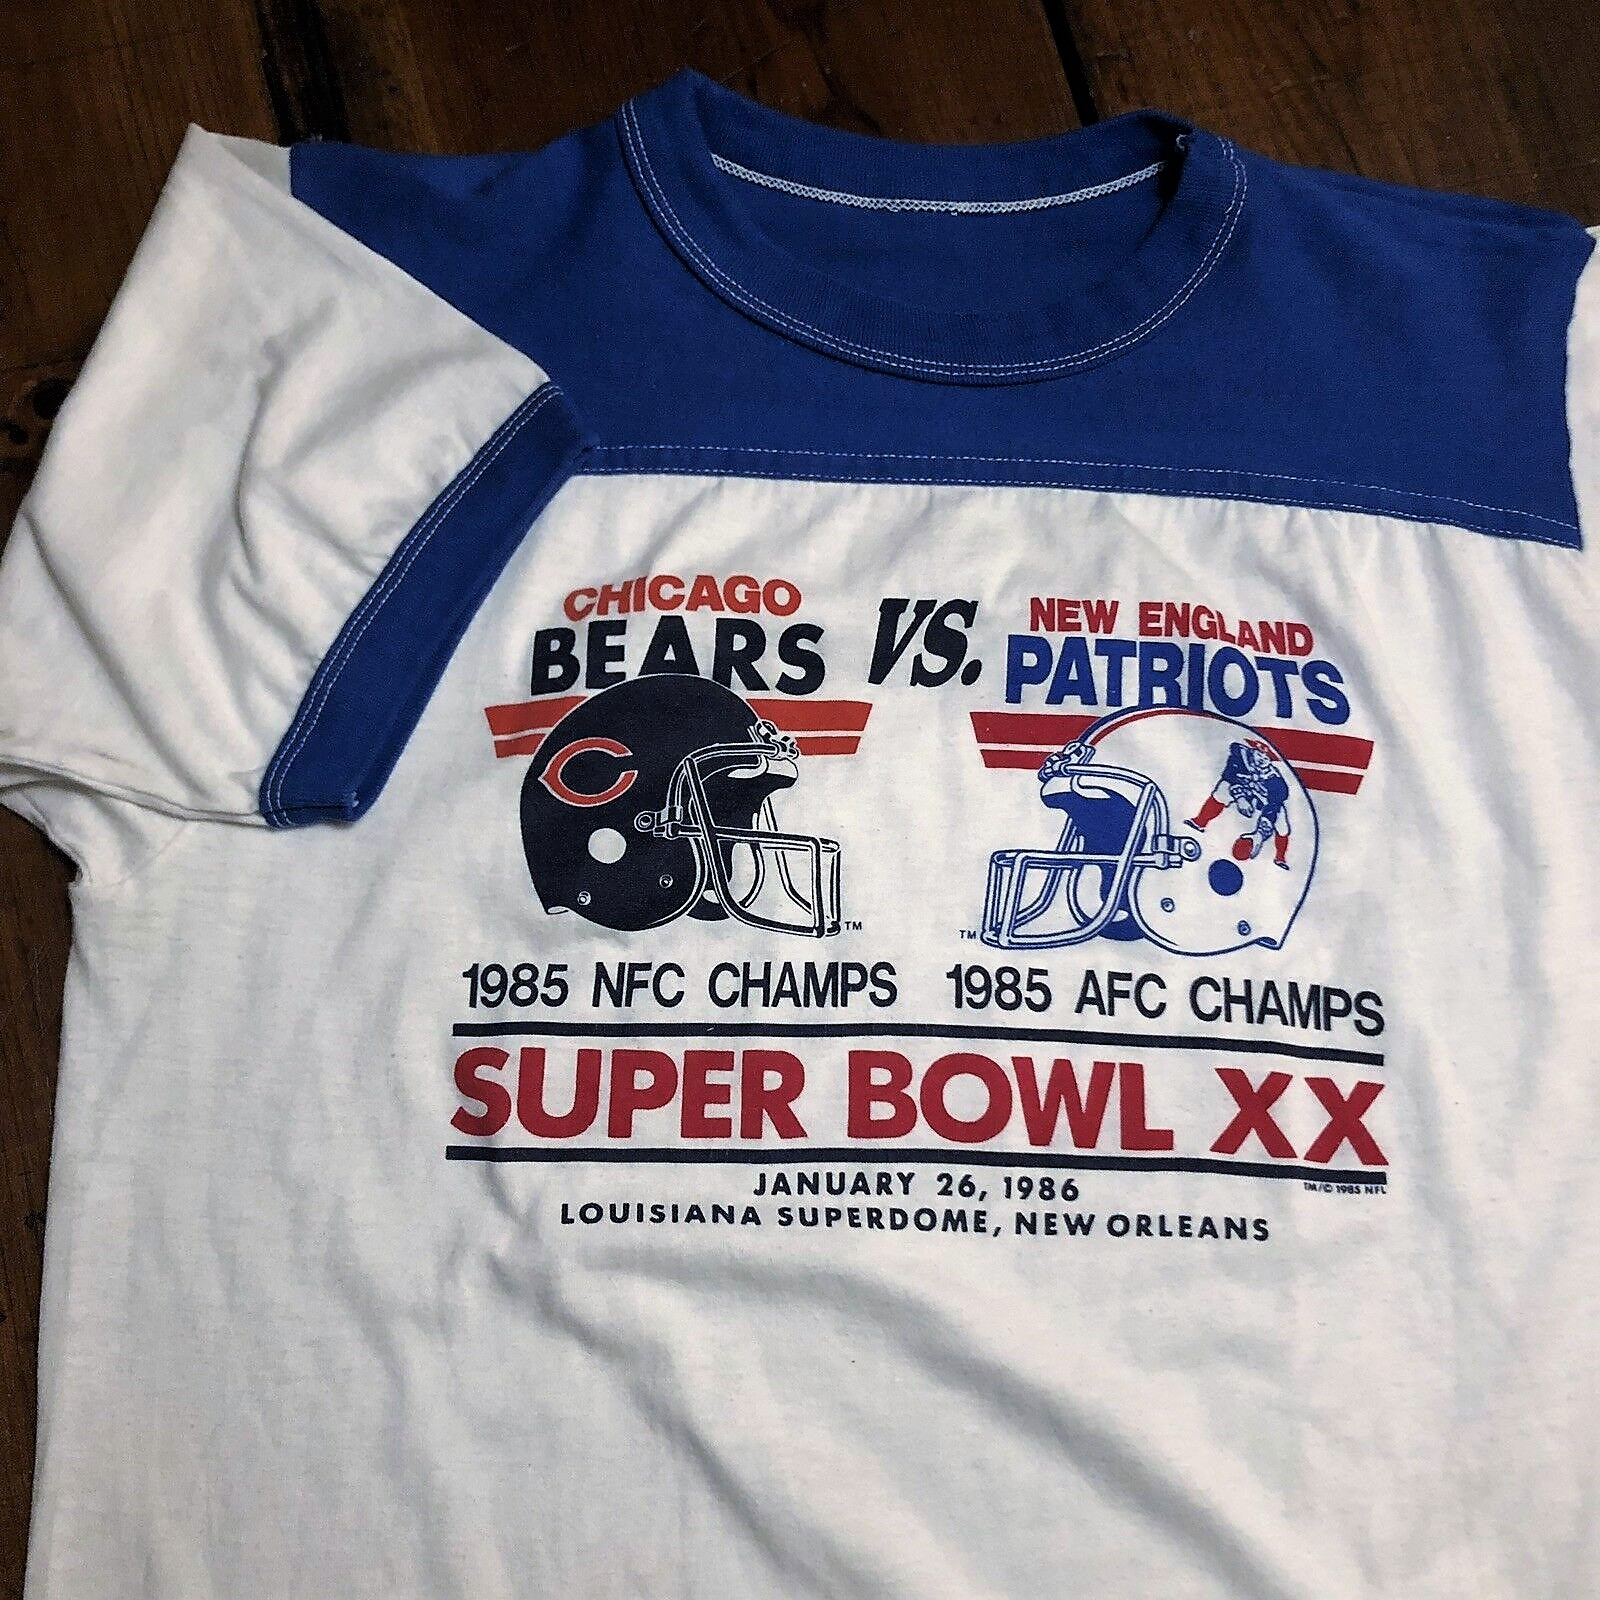 Super Bowl XX         Clothing